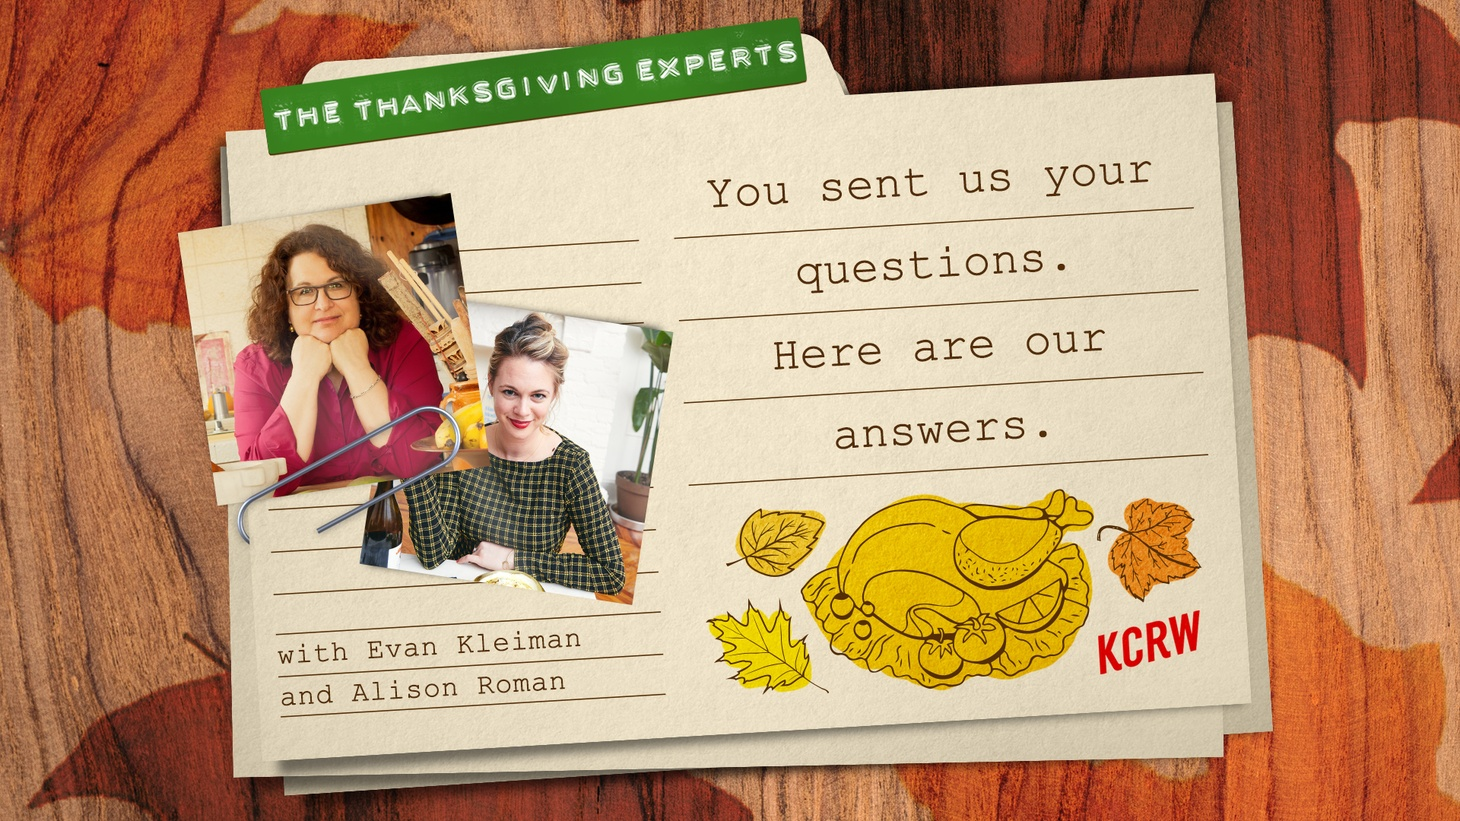 Evan Kleiman and Alison Roman solve your Thanksgiving problems!